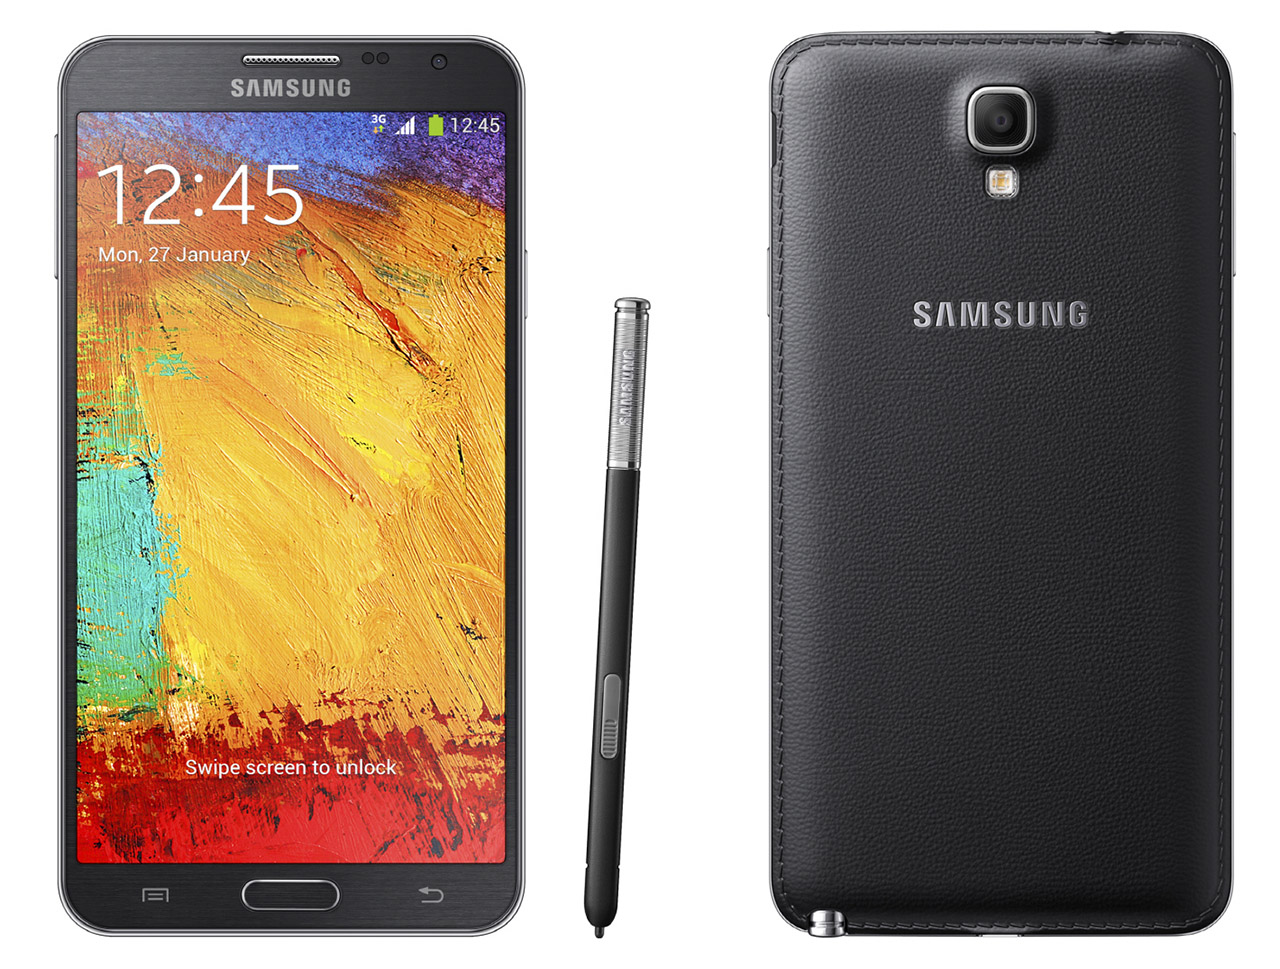 Samsung Galaxy Note 3 NeoSamsung Galaxy Note 3 Neo